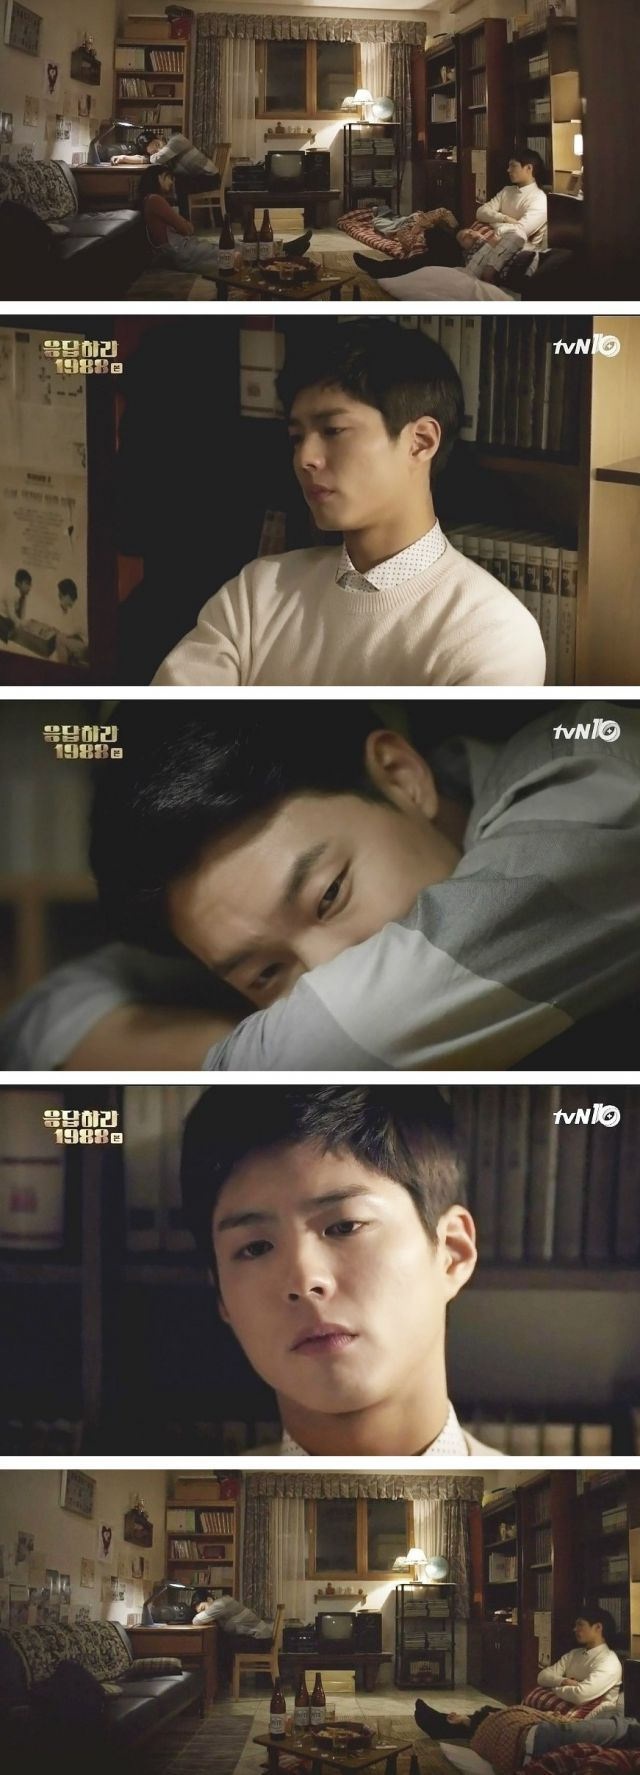 Added episodes 17 and 18 captures for the Korean drama 'Answer Me 1988'.